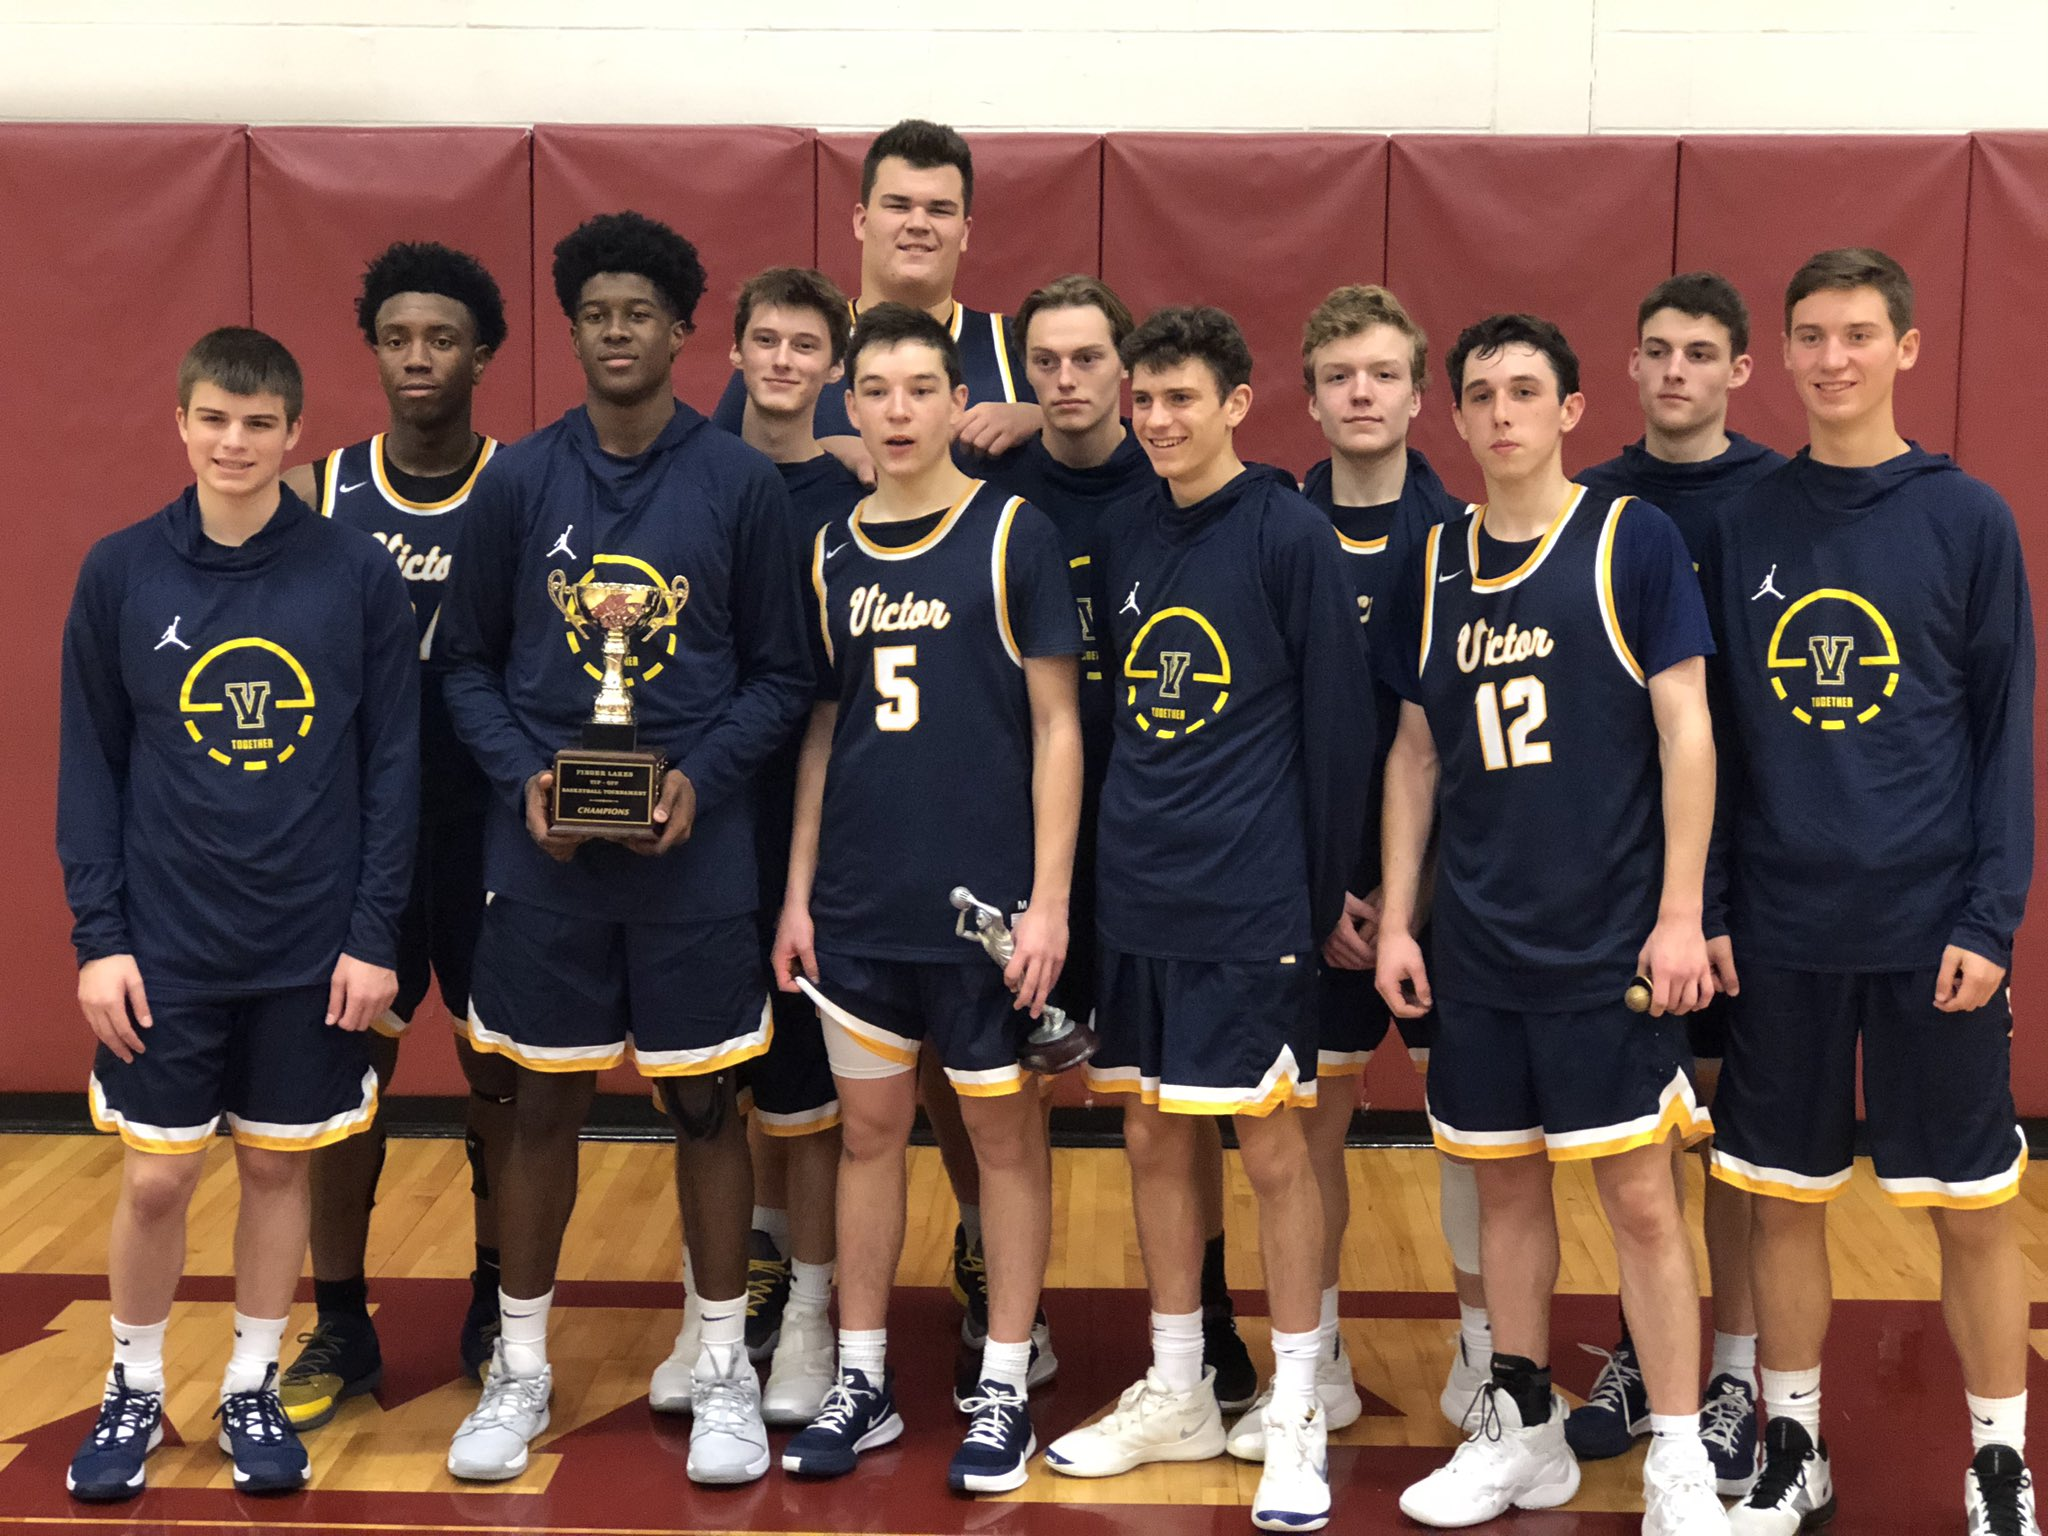 W-FL Saturday: Victor wins Finger Lakes Tip-Off Tournament; Waterloo girls improve to 4-0